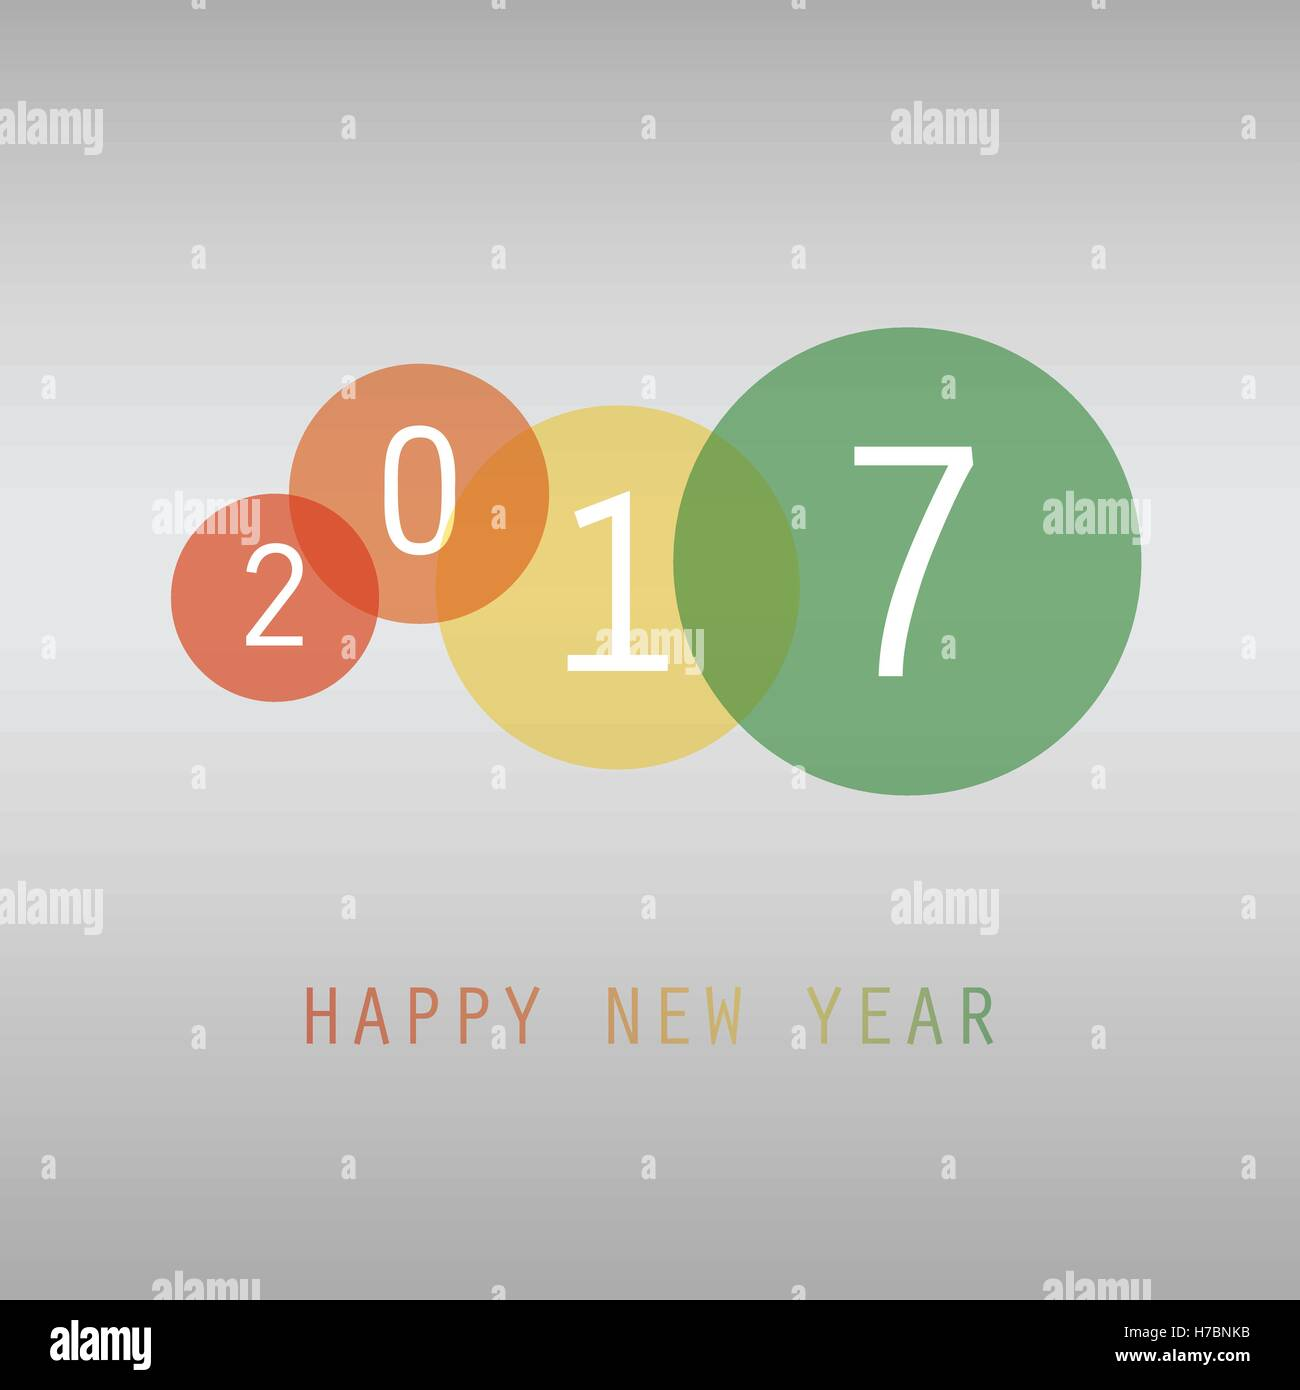 Best Wishes - Colorful Abstract Modern Style Happy New Year Greeting ...